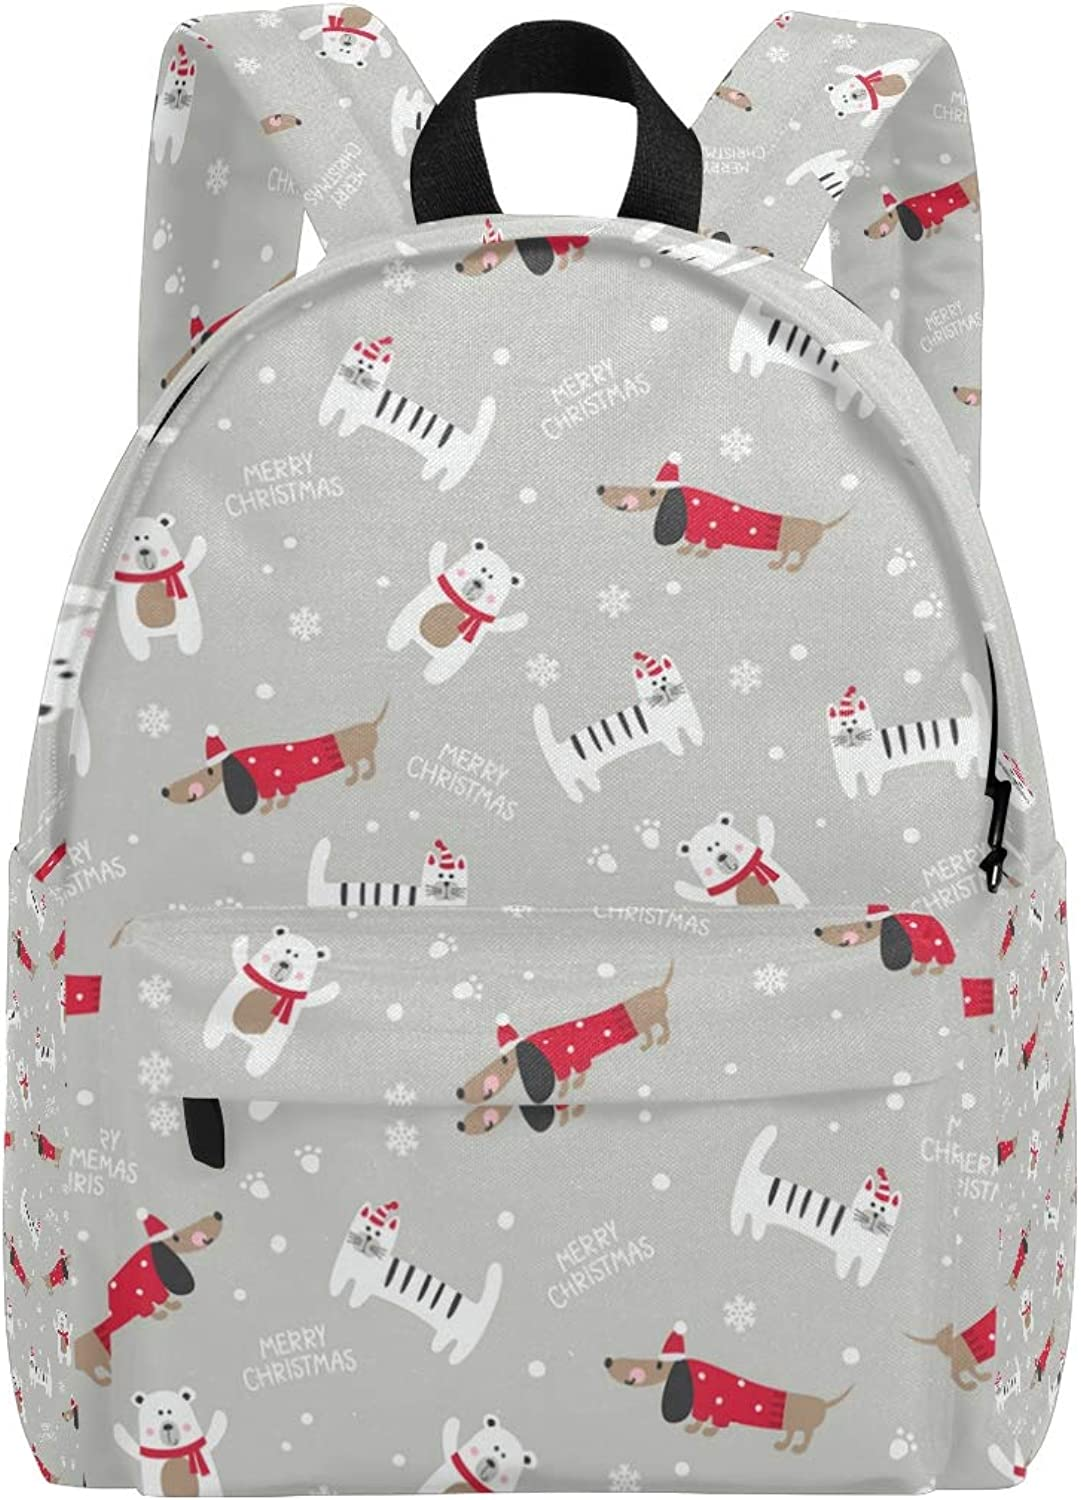 College Bookbag Cute Cats and Dachshund Dogs Print Schoolbag Unisex Backpack Hiking Daypacks Travel Sports Bags